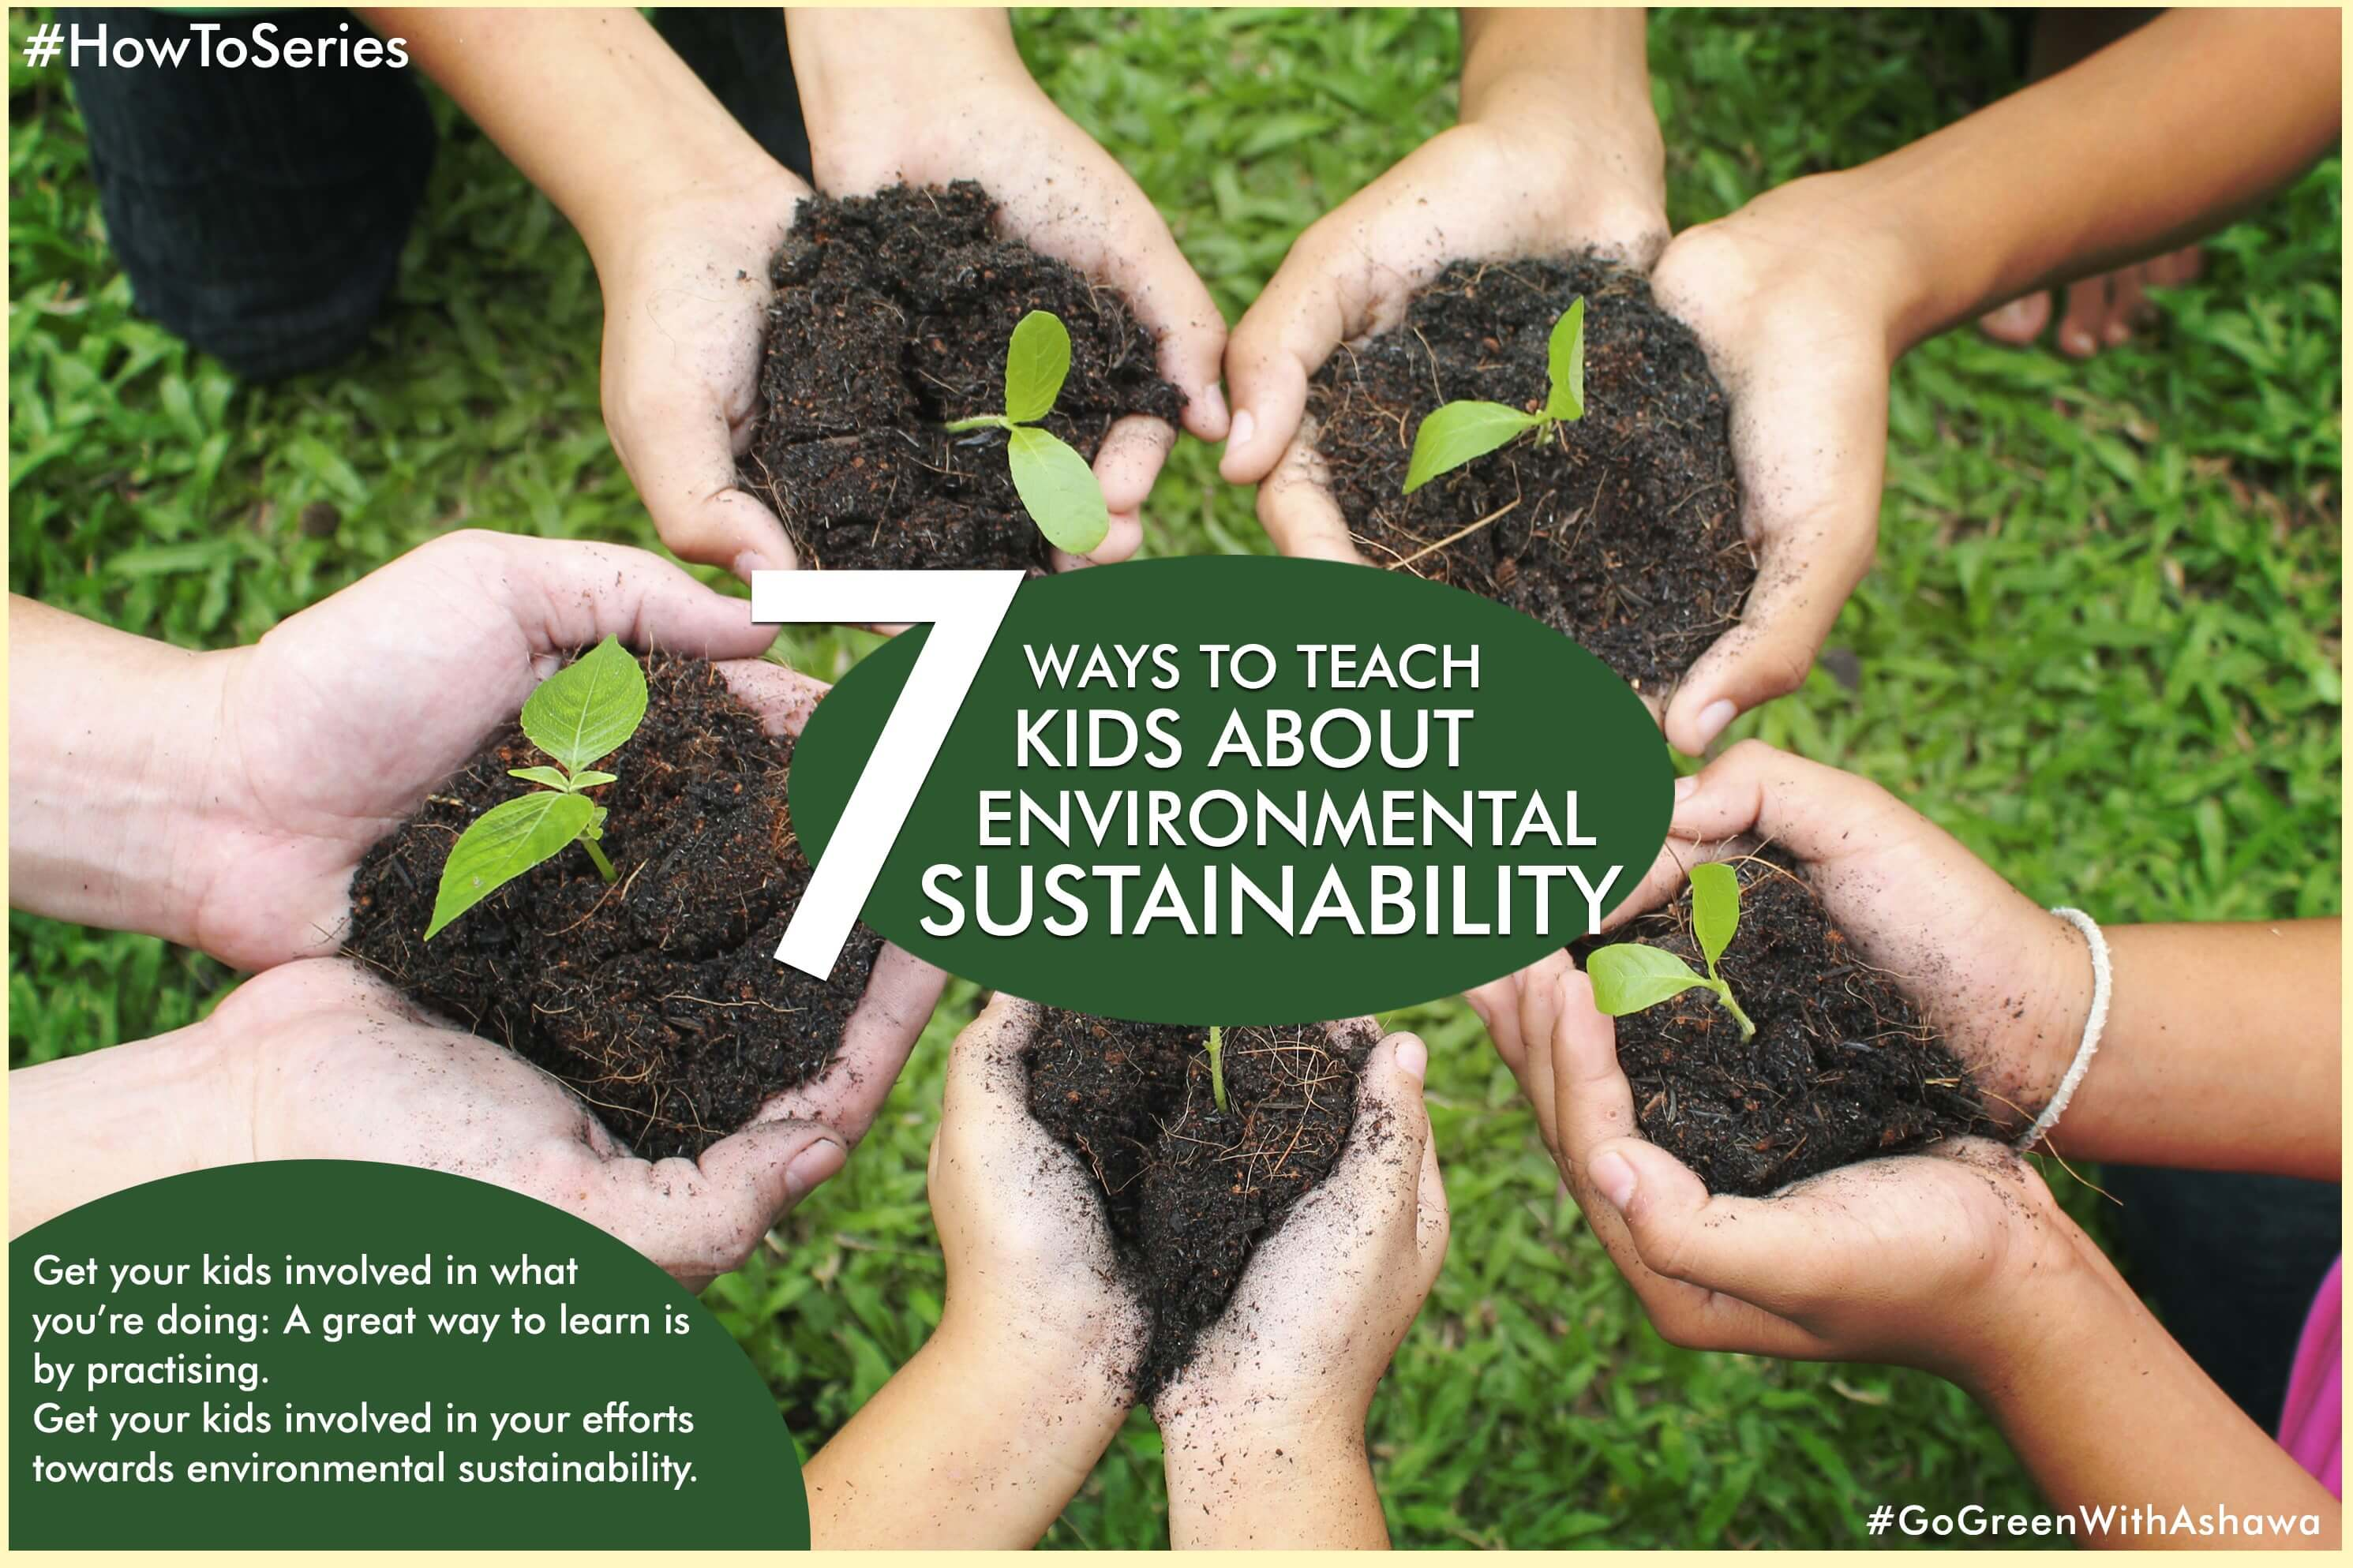 7 WAYS TO TEACH KIDS ABOUT ENVIRONMENT SUSTAINABILITY